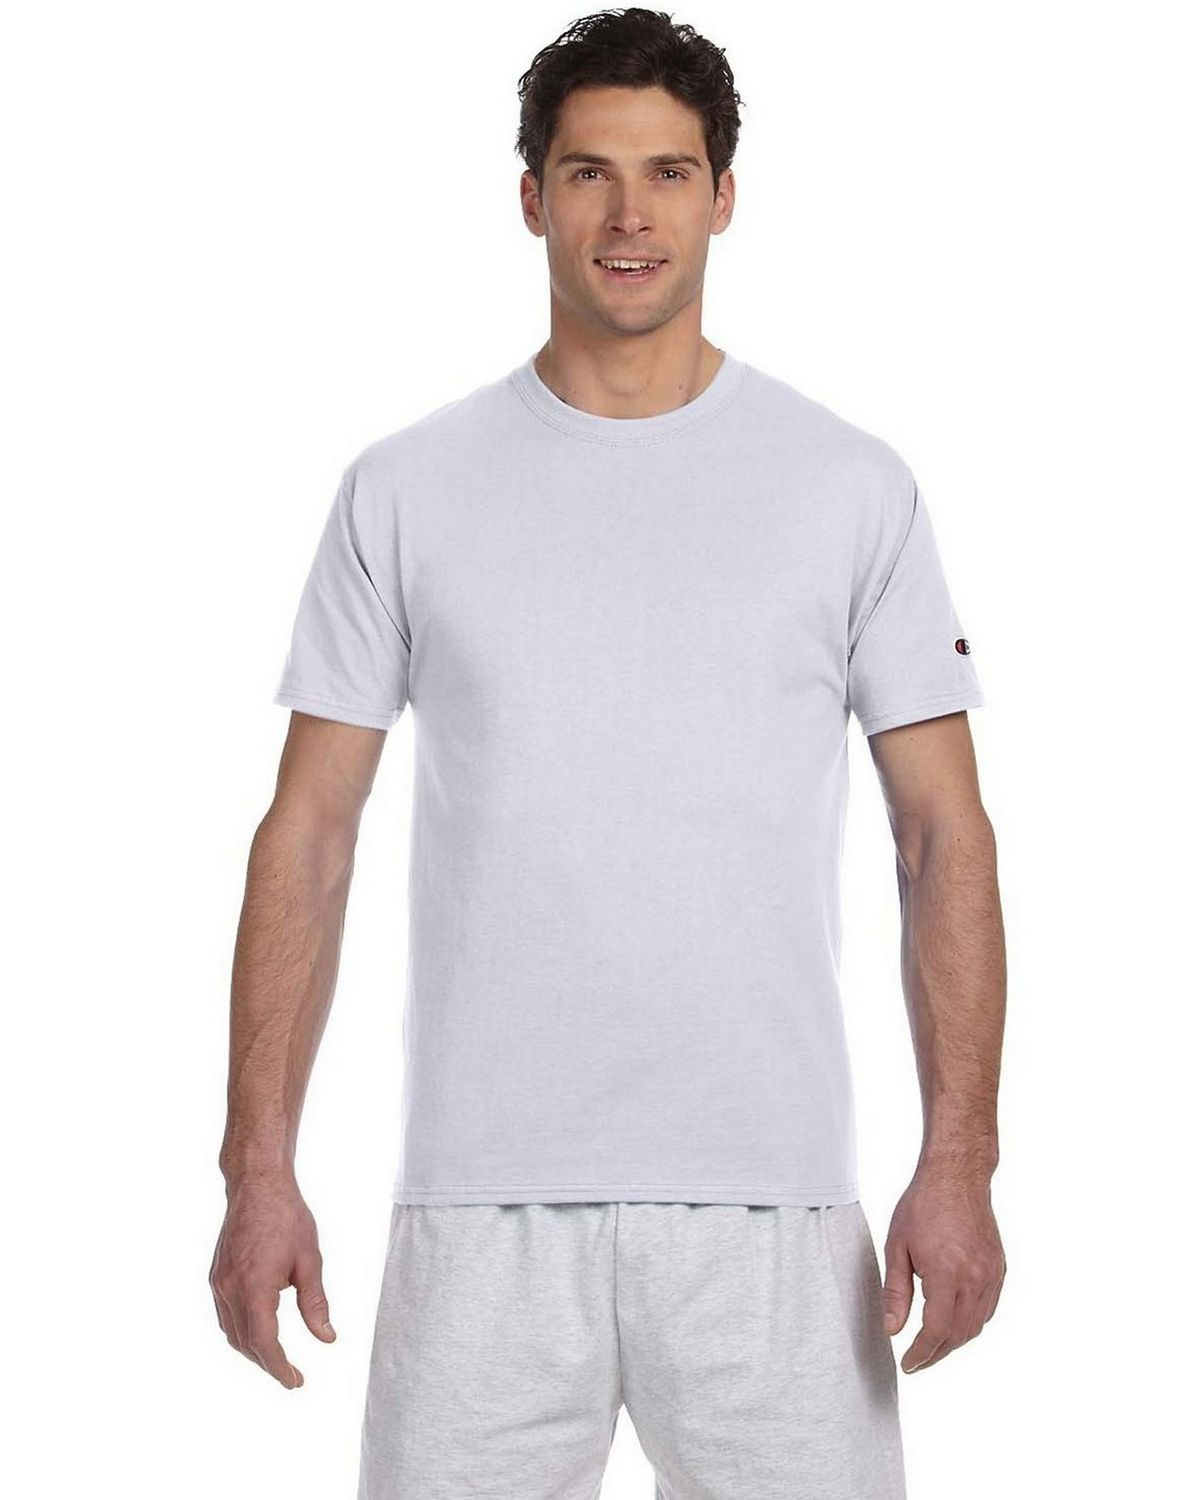 db4273290089e Buy Champion T525C Cotton Tagless Short Sleeve T-Shirt - Men's